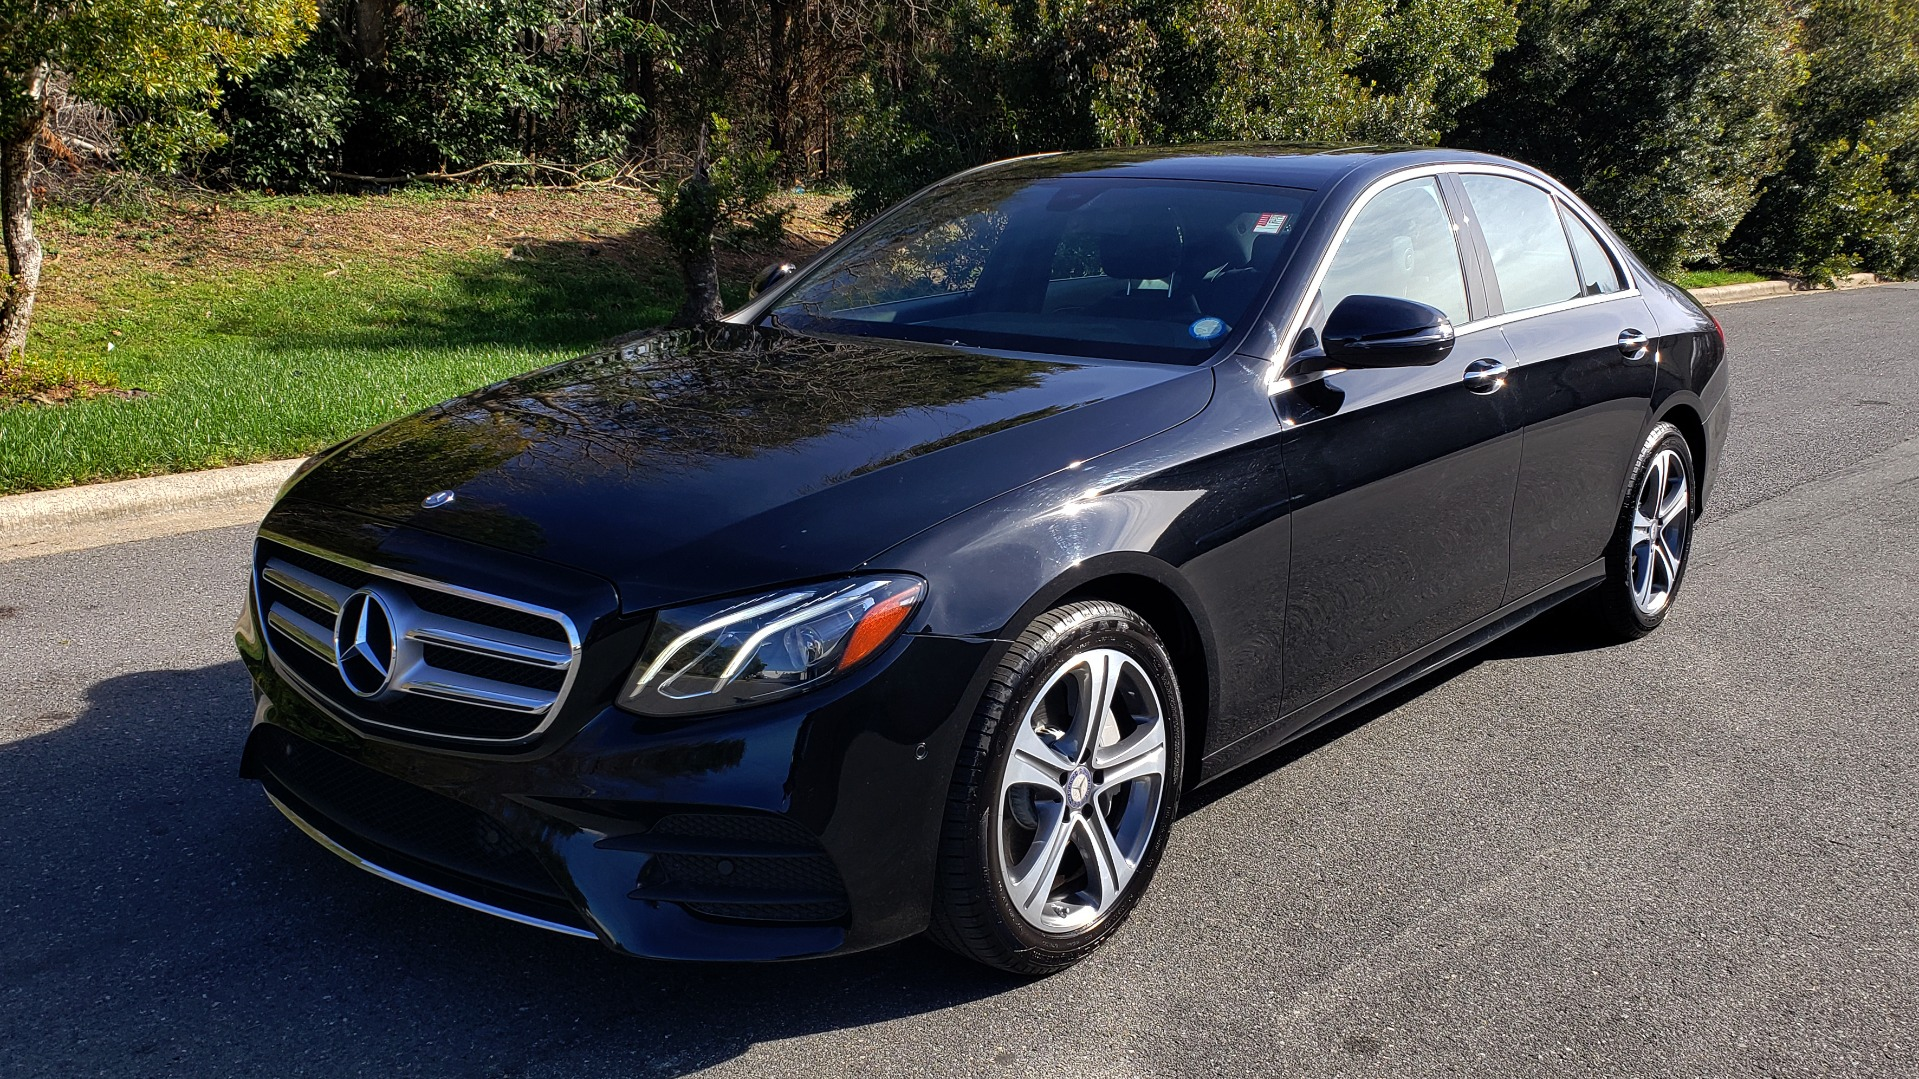 Used 2017 Mercedes-Benz E-CLASS E 300 PREMIUM / NAV / SUNROOF / BURMESTER / HTD STS / REARVIEW for sale $29,995 at Formula Imports in Charlotte NC 28227 1